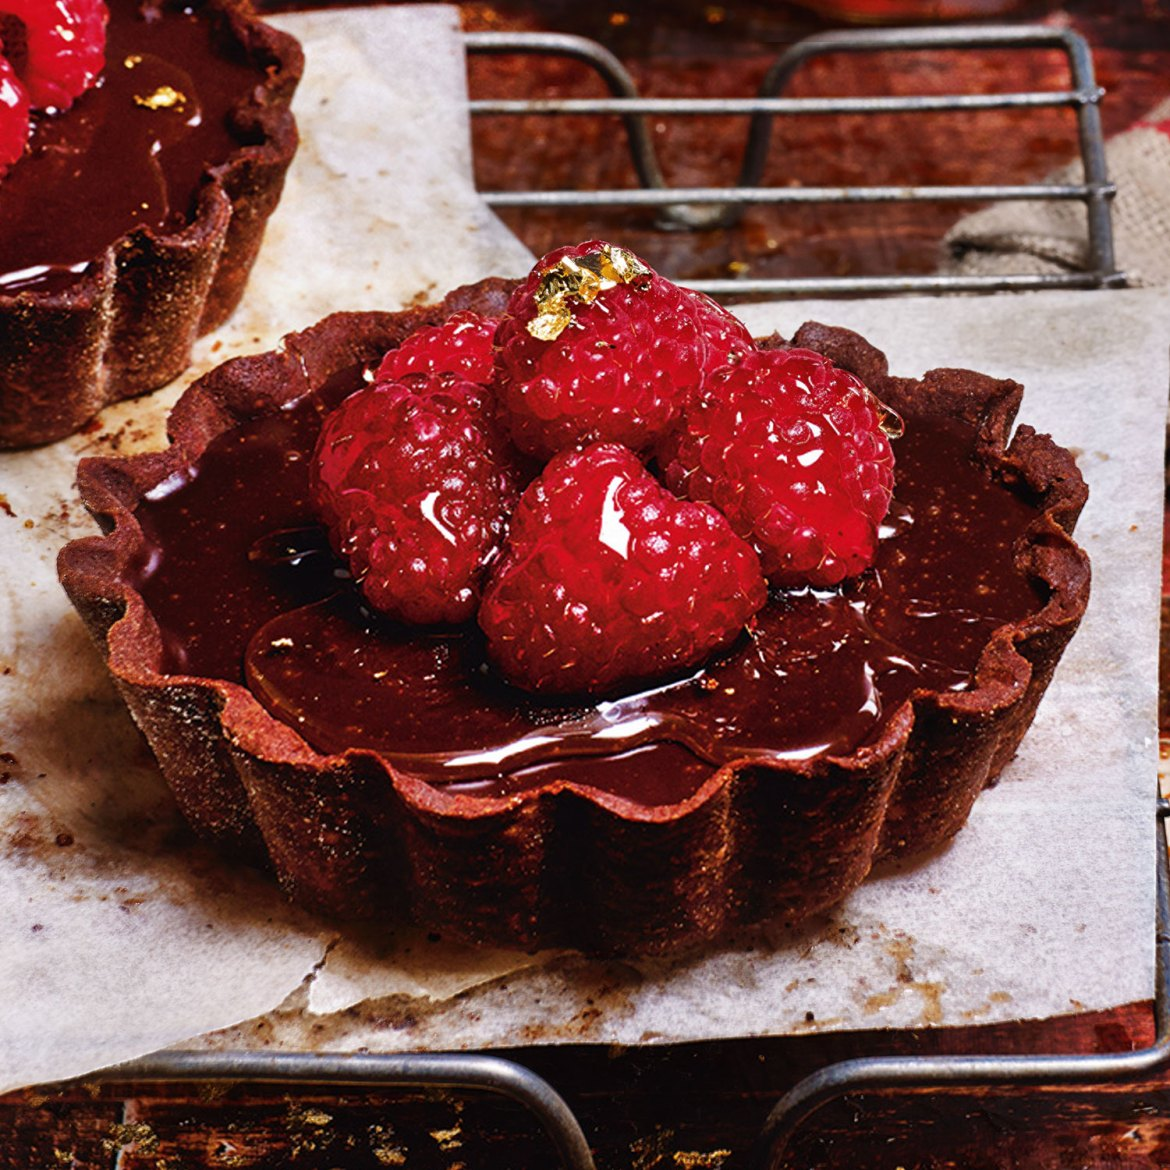 Chocolate Tarts with Raspberries and Muscat Syrup